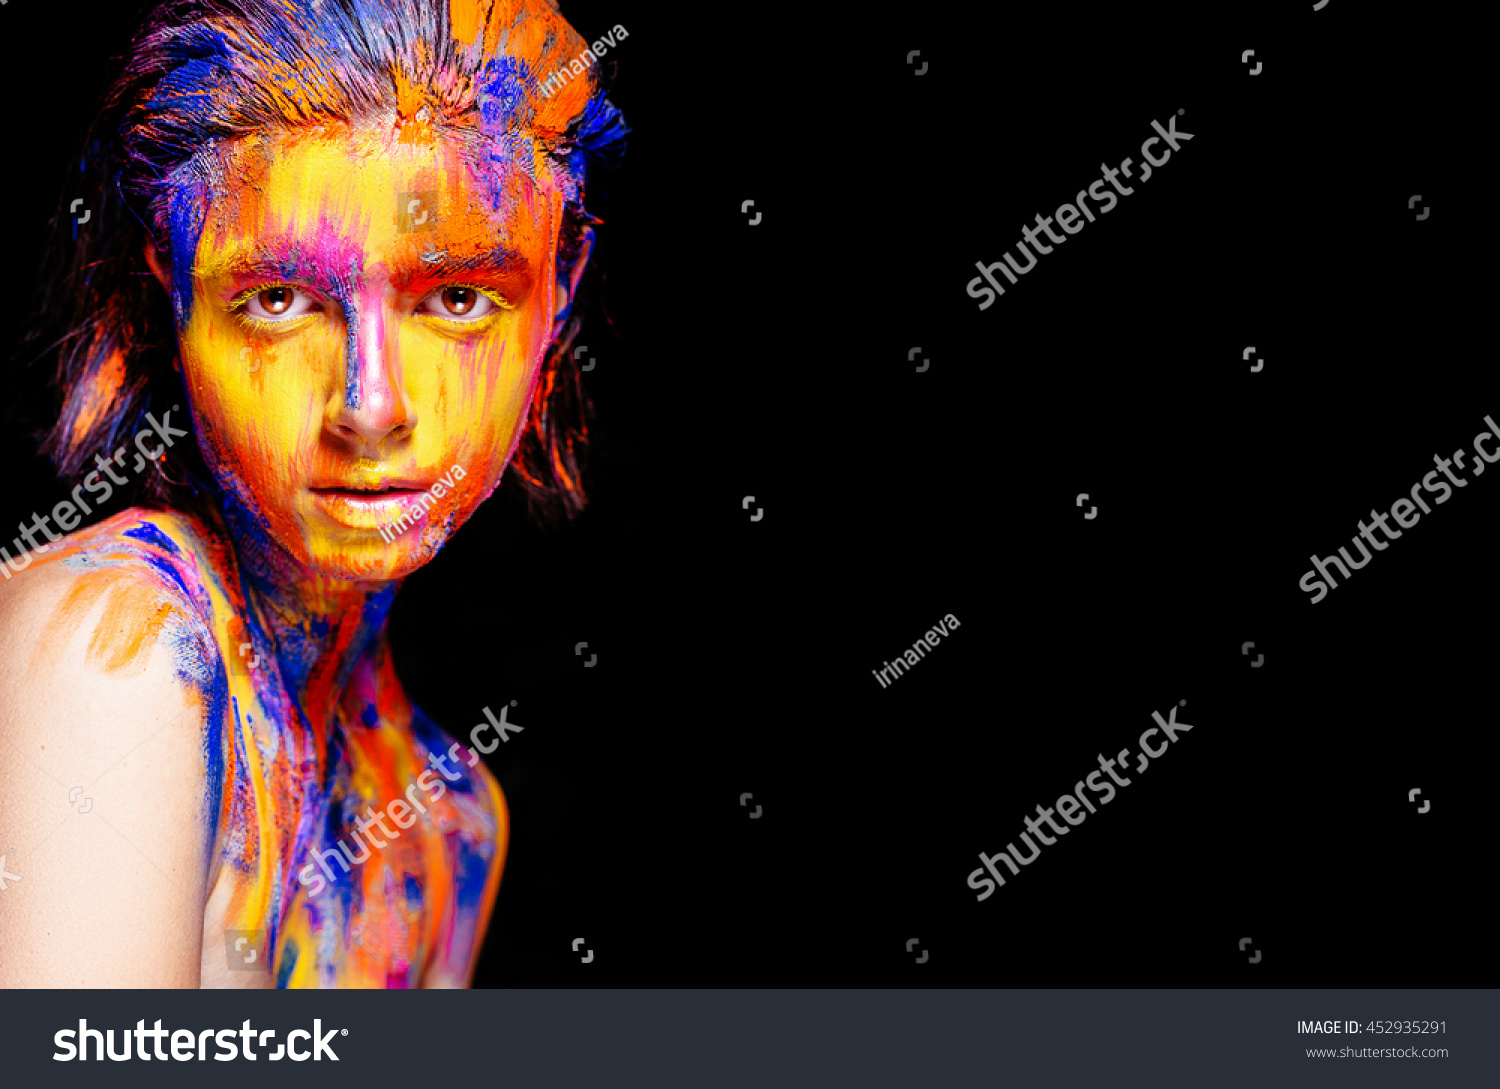 Art makeup. Face, neck and hair girls smeared with bright colors of yellow,  blue and pink colors. Holi Festival | EZ Canvas